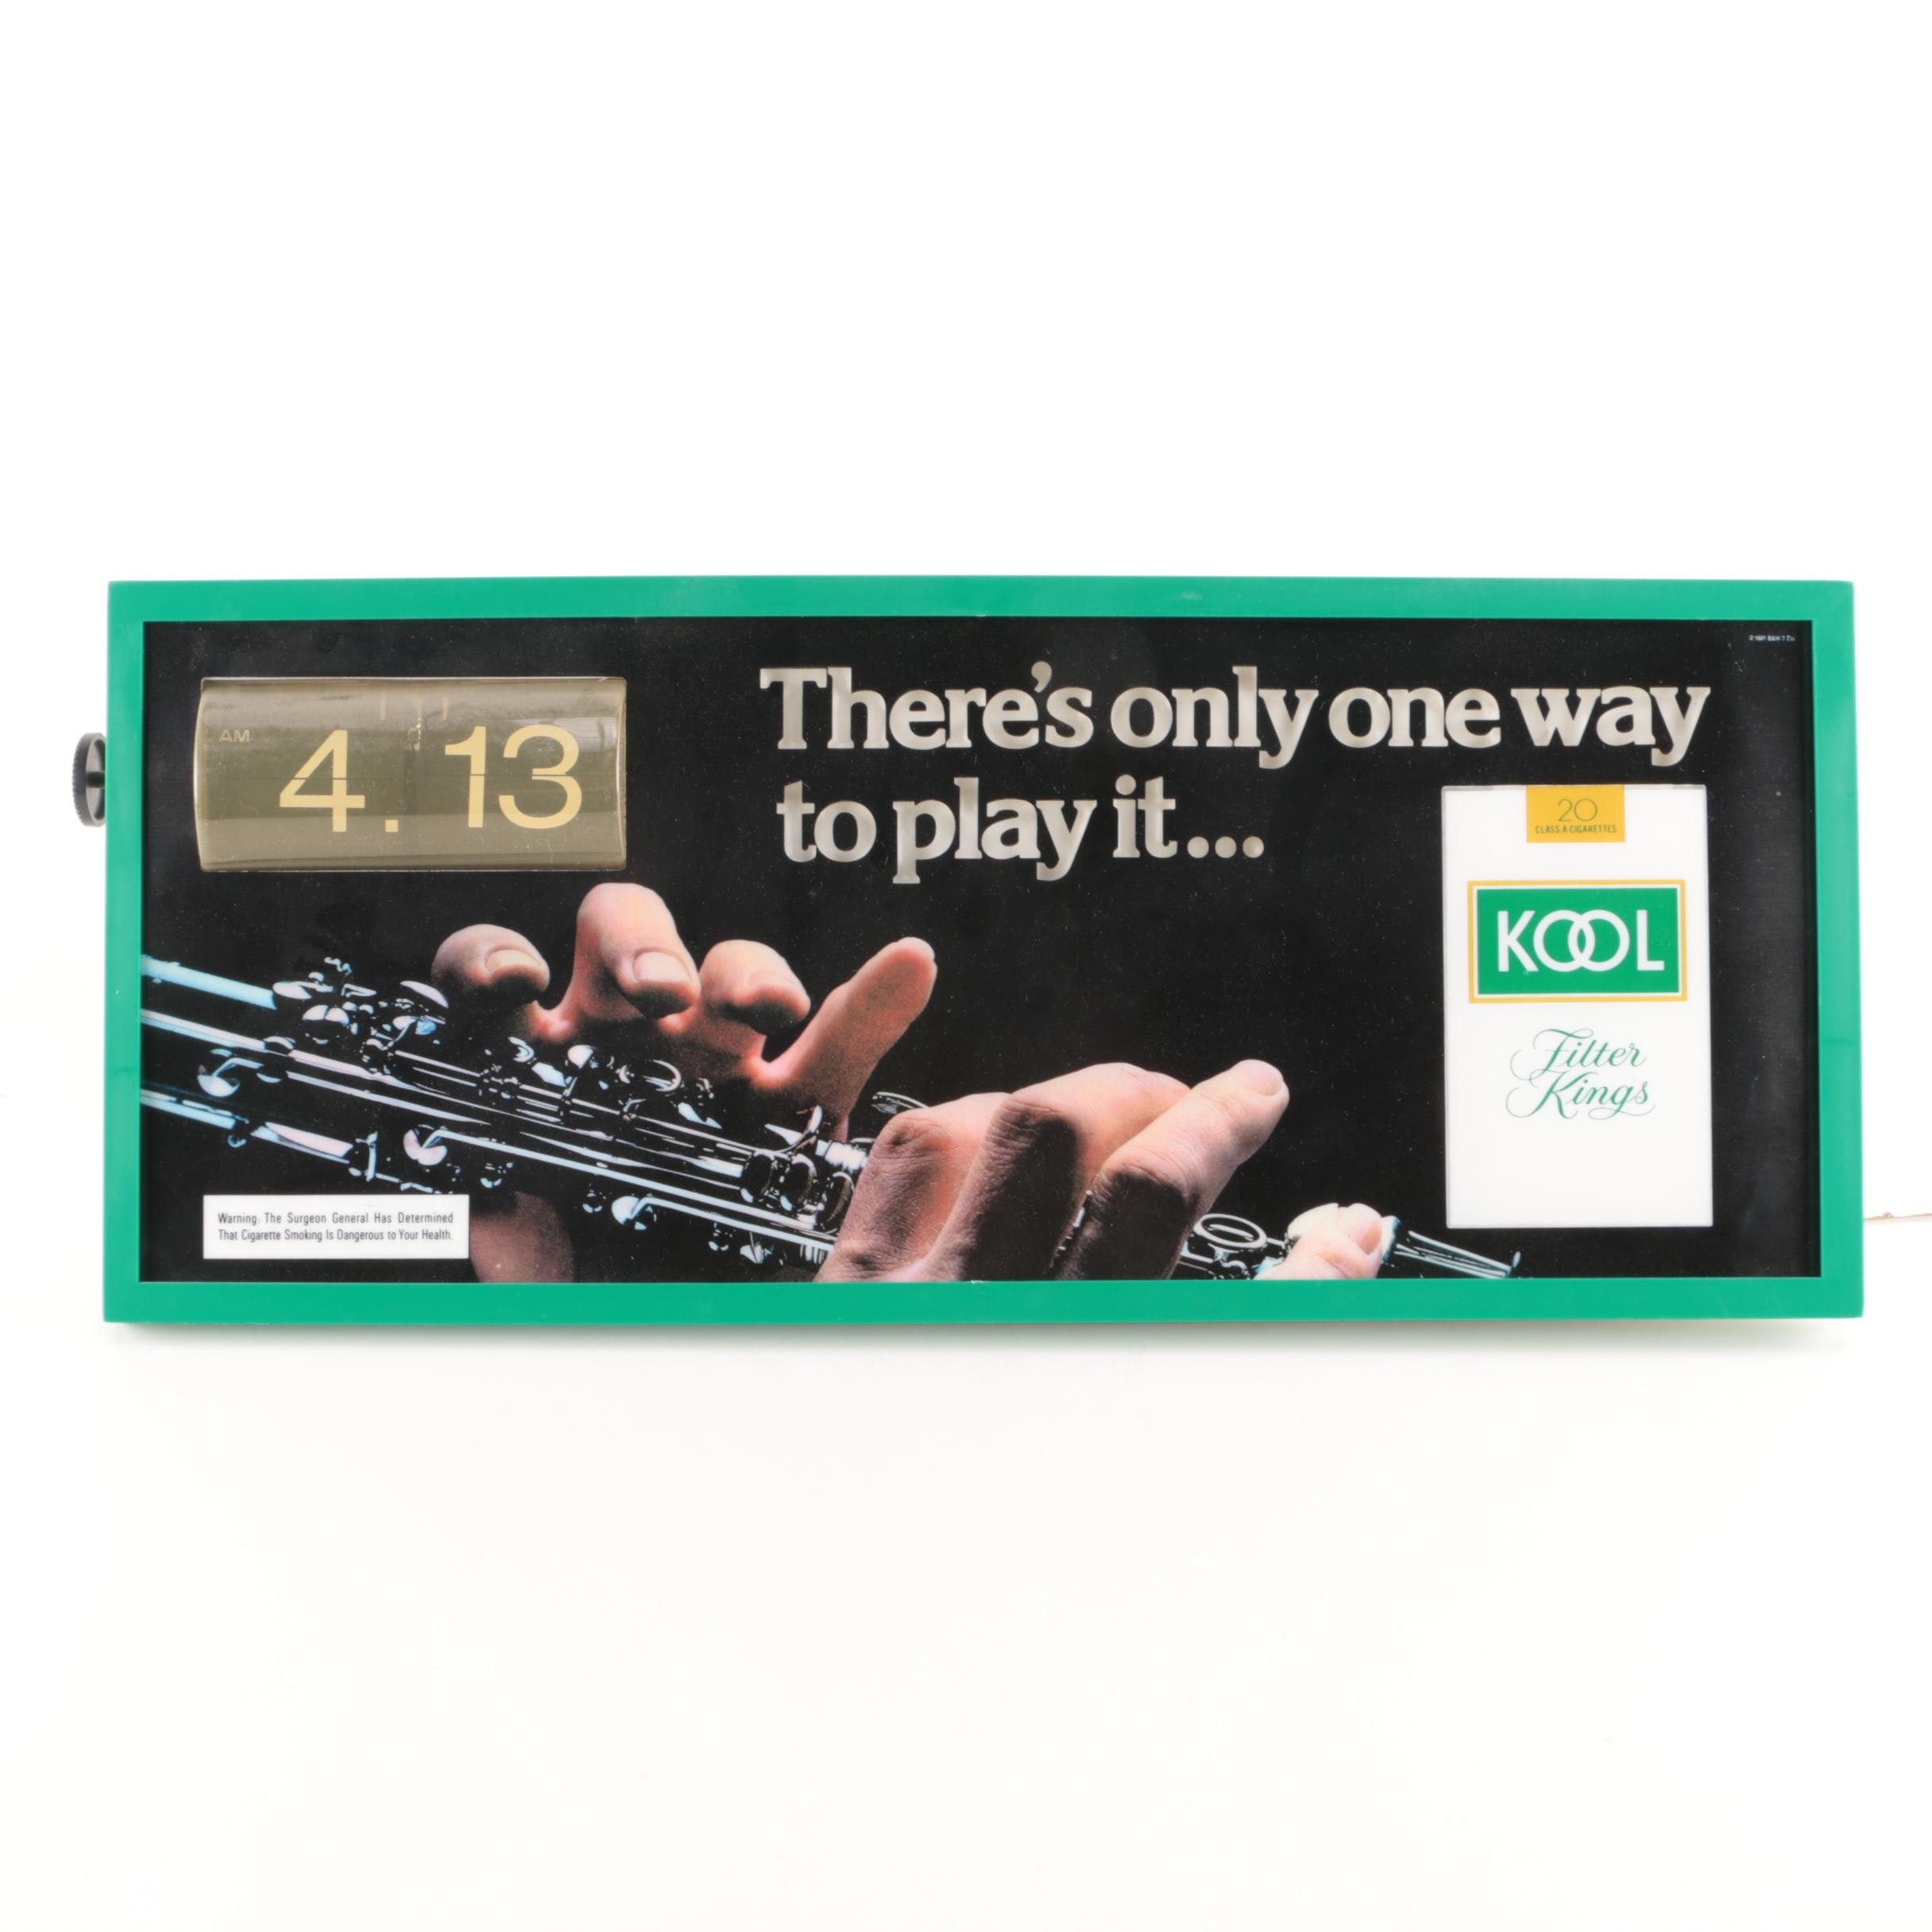 Kool Tobacco Advertisement Wall Calendar